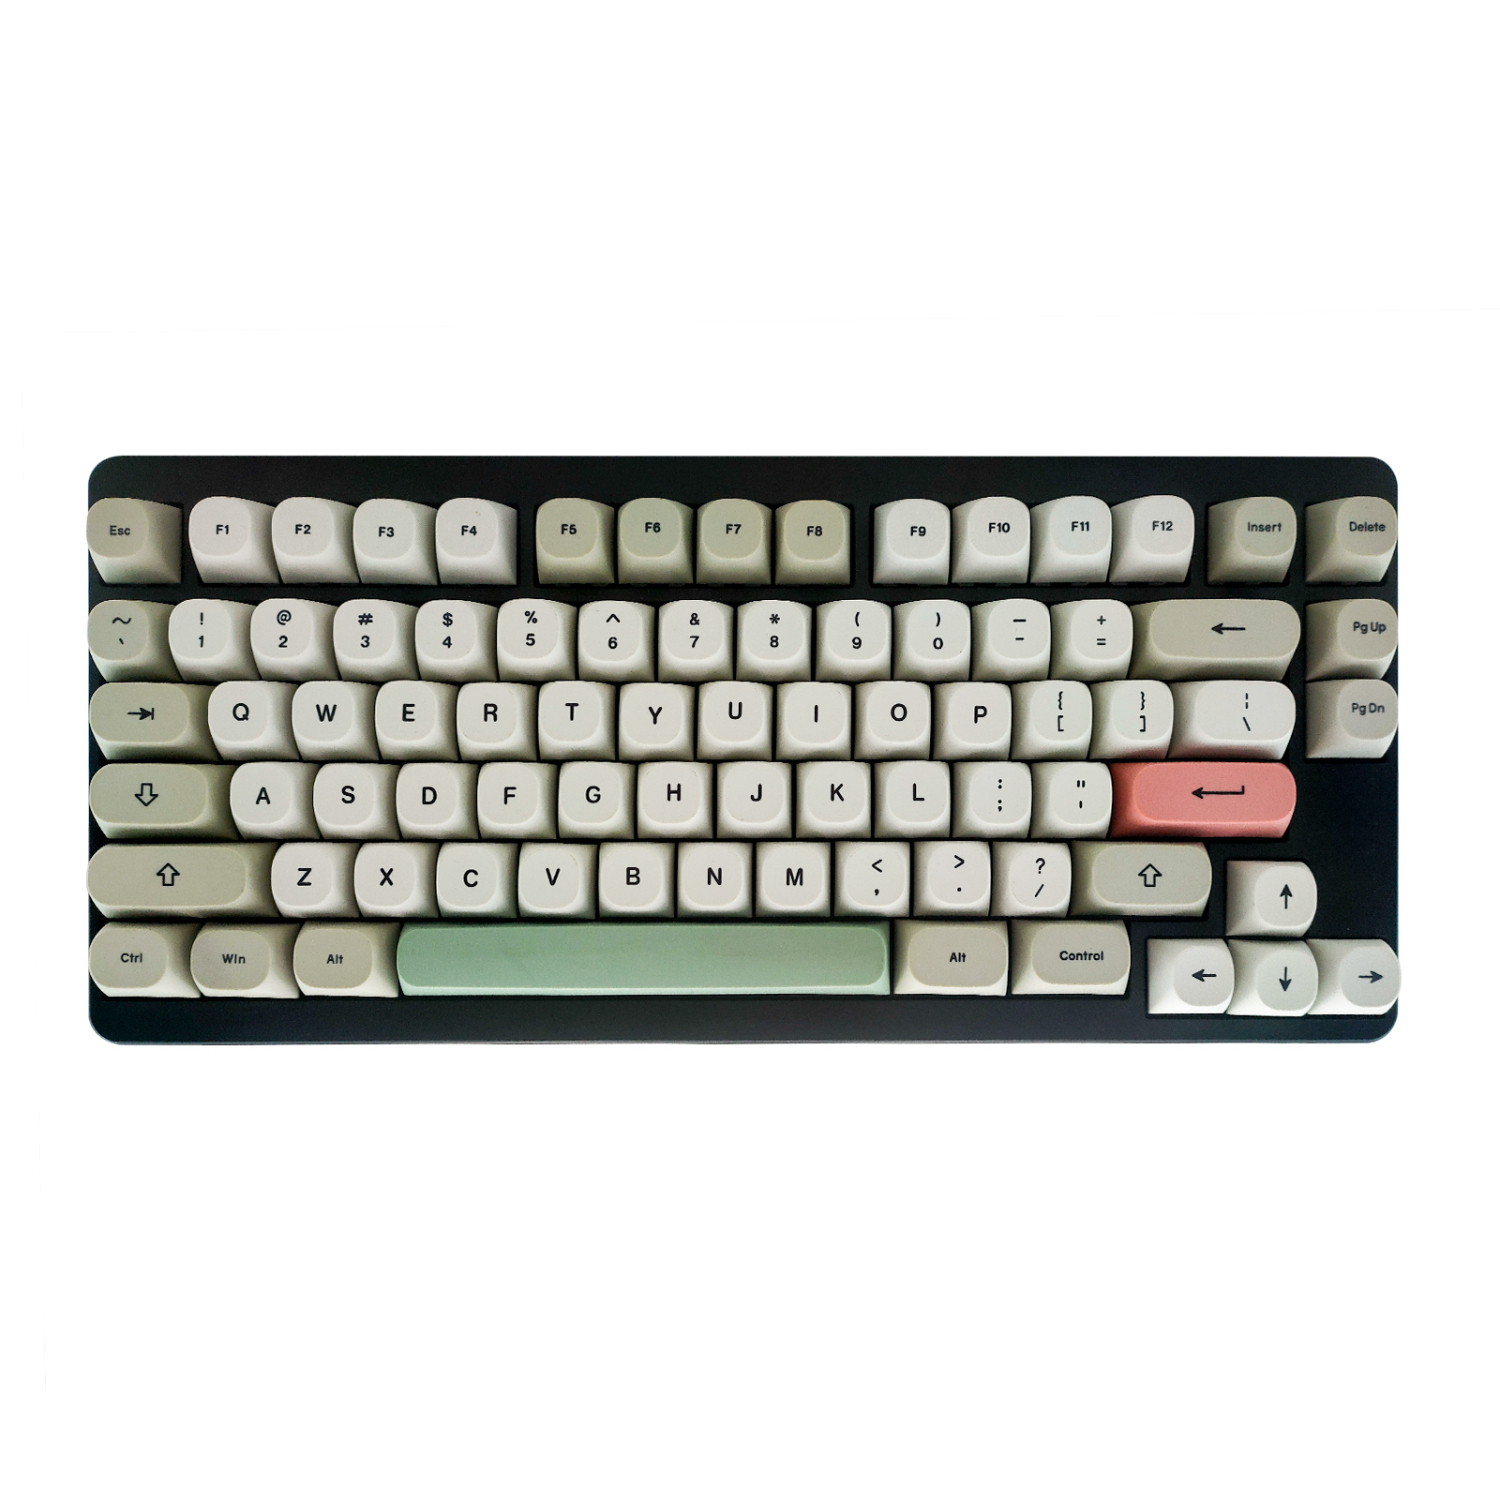 Idobao Keycap Of Keyboard, With Or Without Letters, Can Be Used For Game Keyboard 80/96 Key